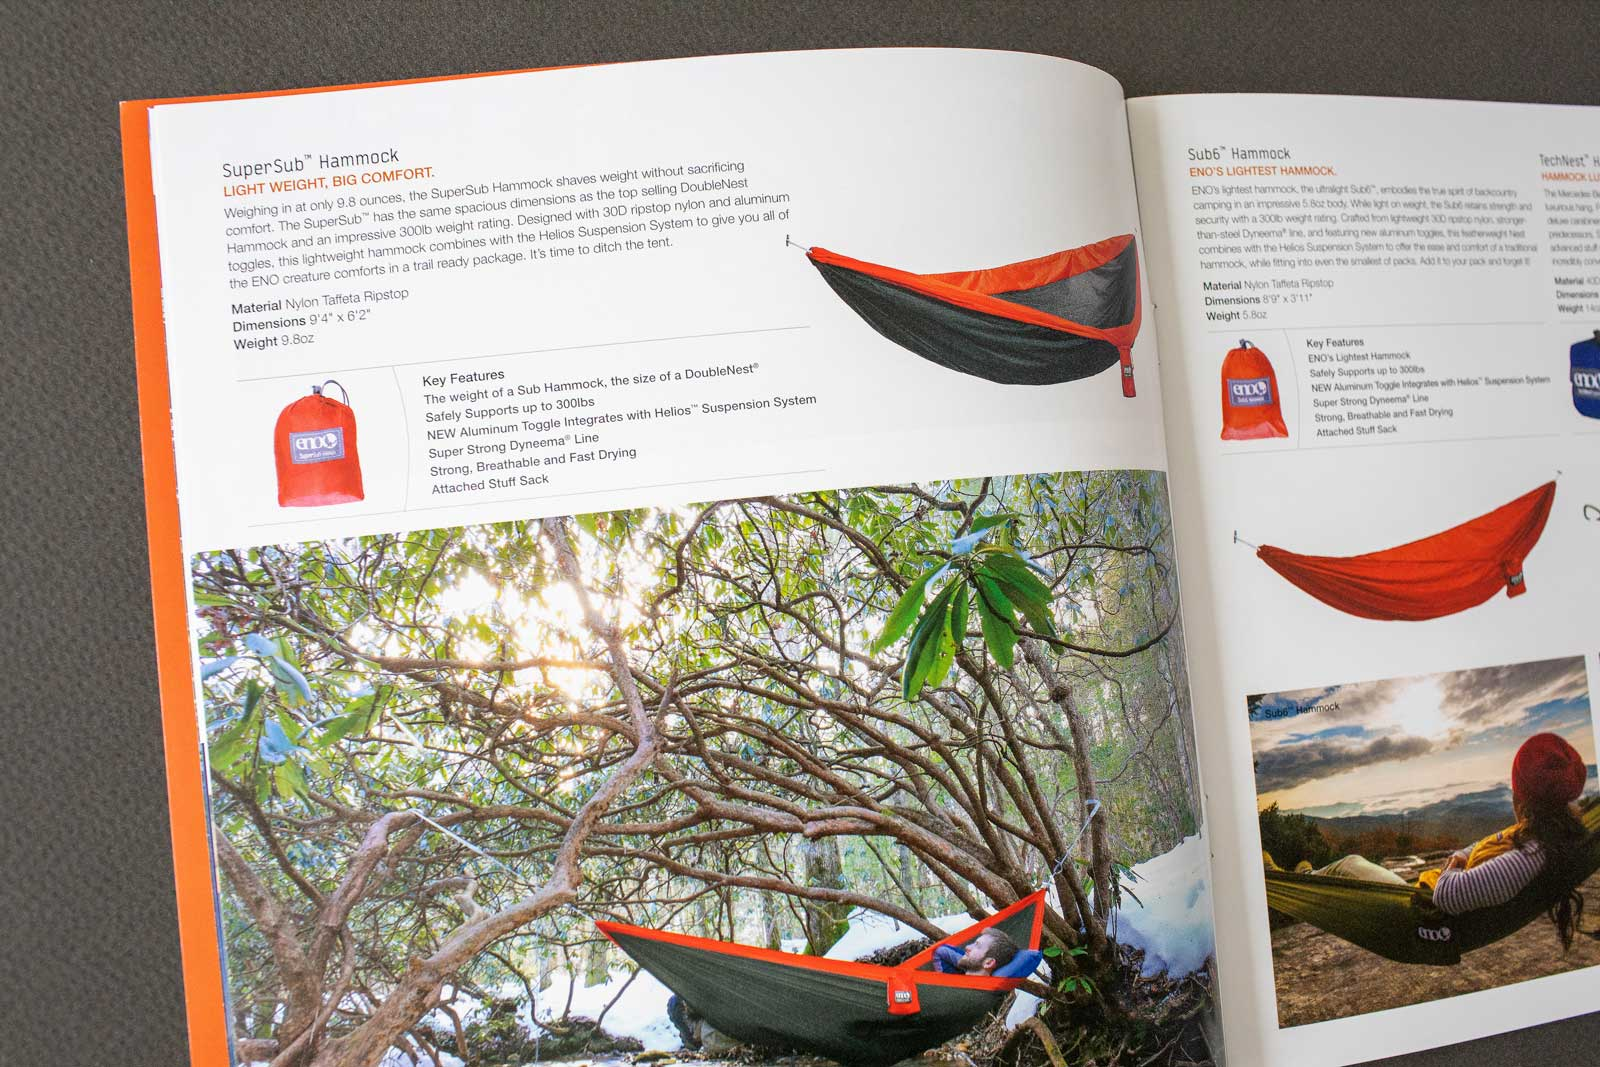 ENO Hammocks catalog spread detail showing hiker in hammock over stream with snow on the ground.